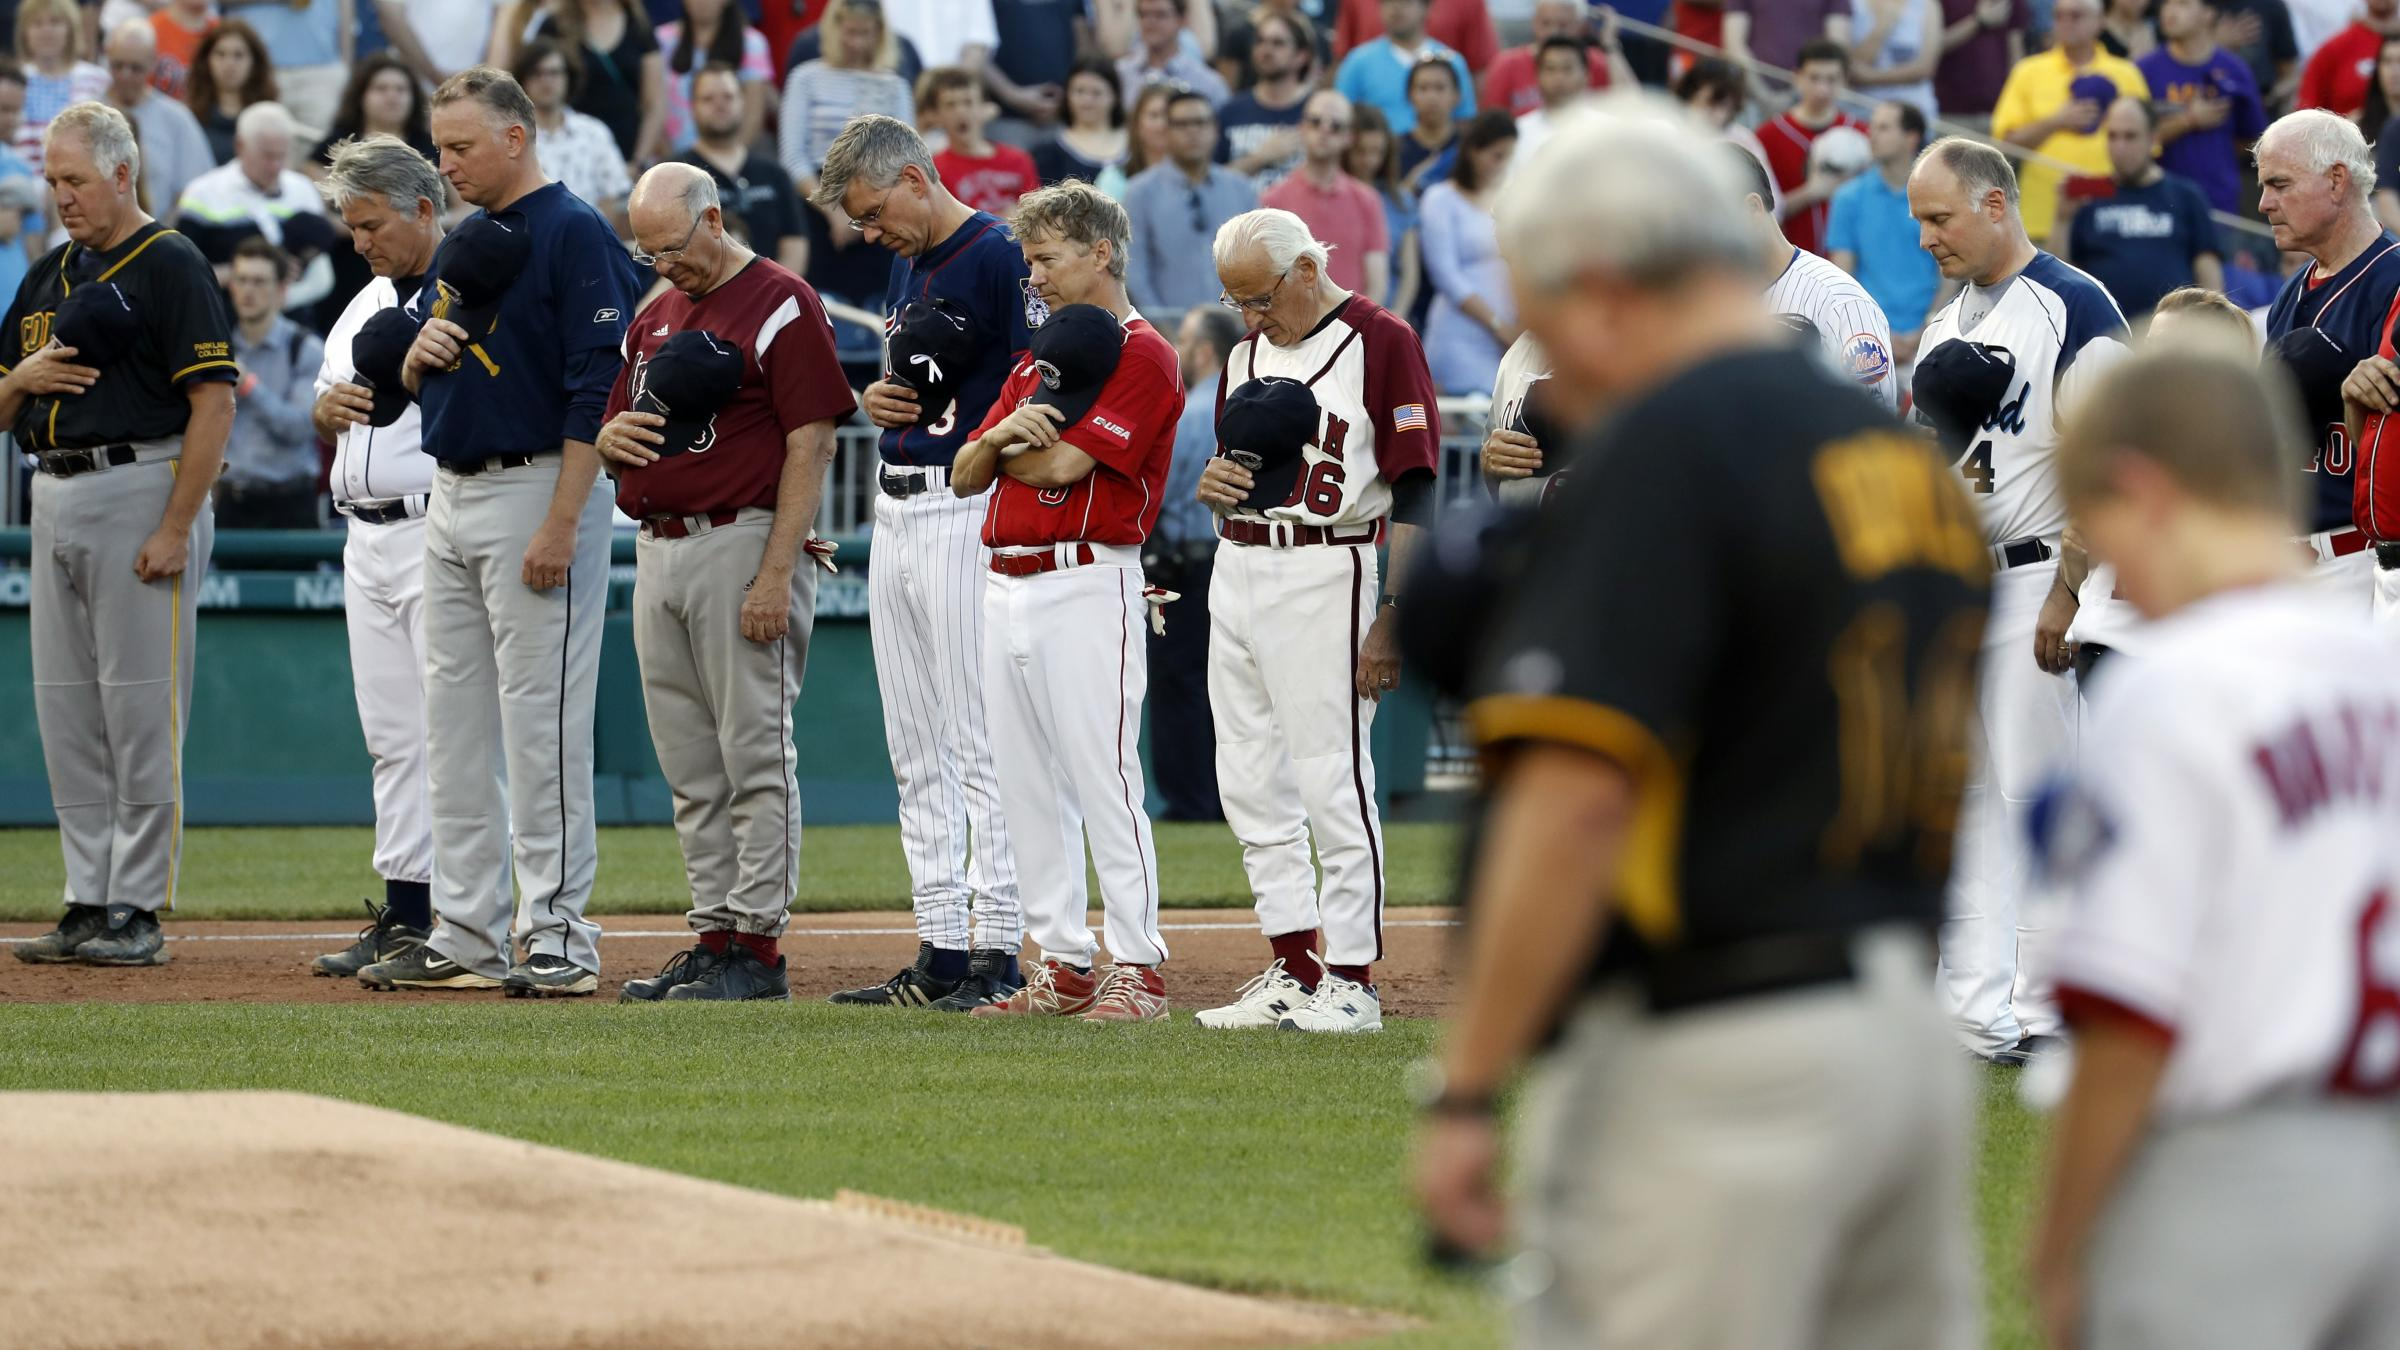 Trump Says 'Let's Play Ball' At Record Turnout For Congressional Baseball Game